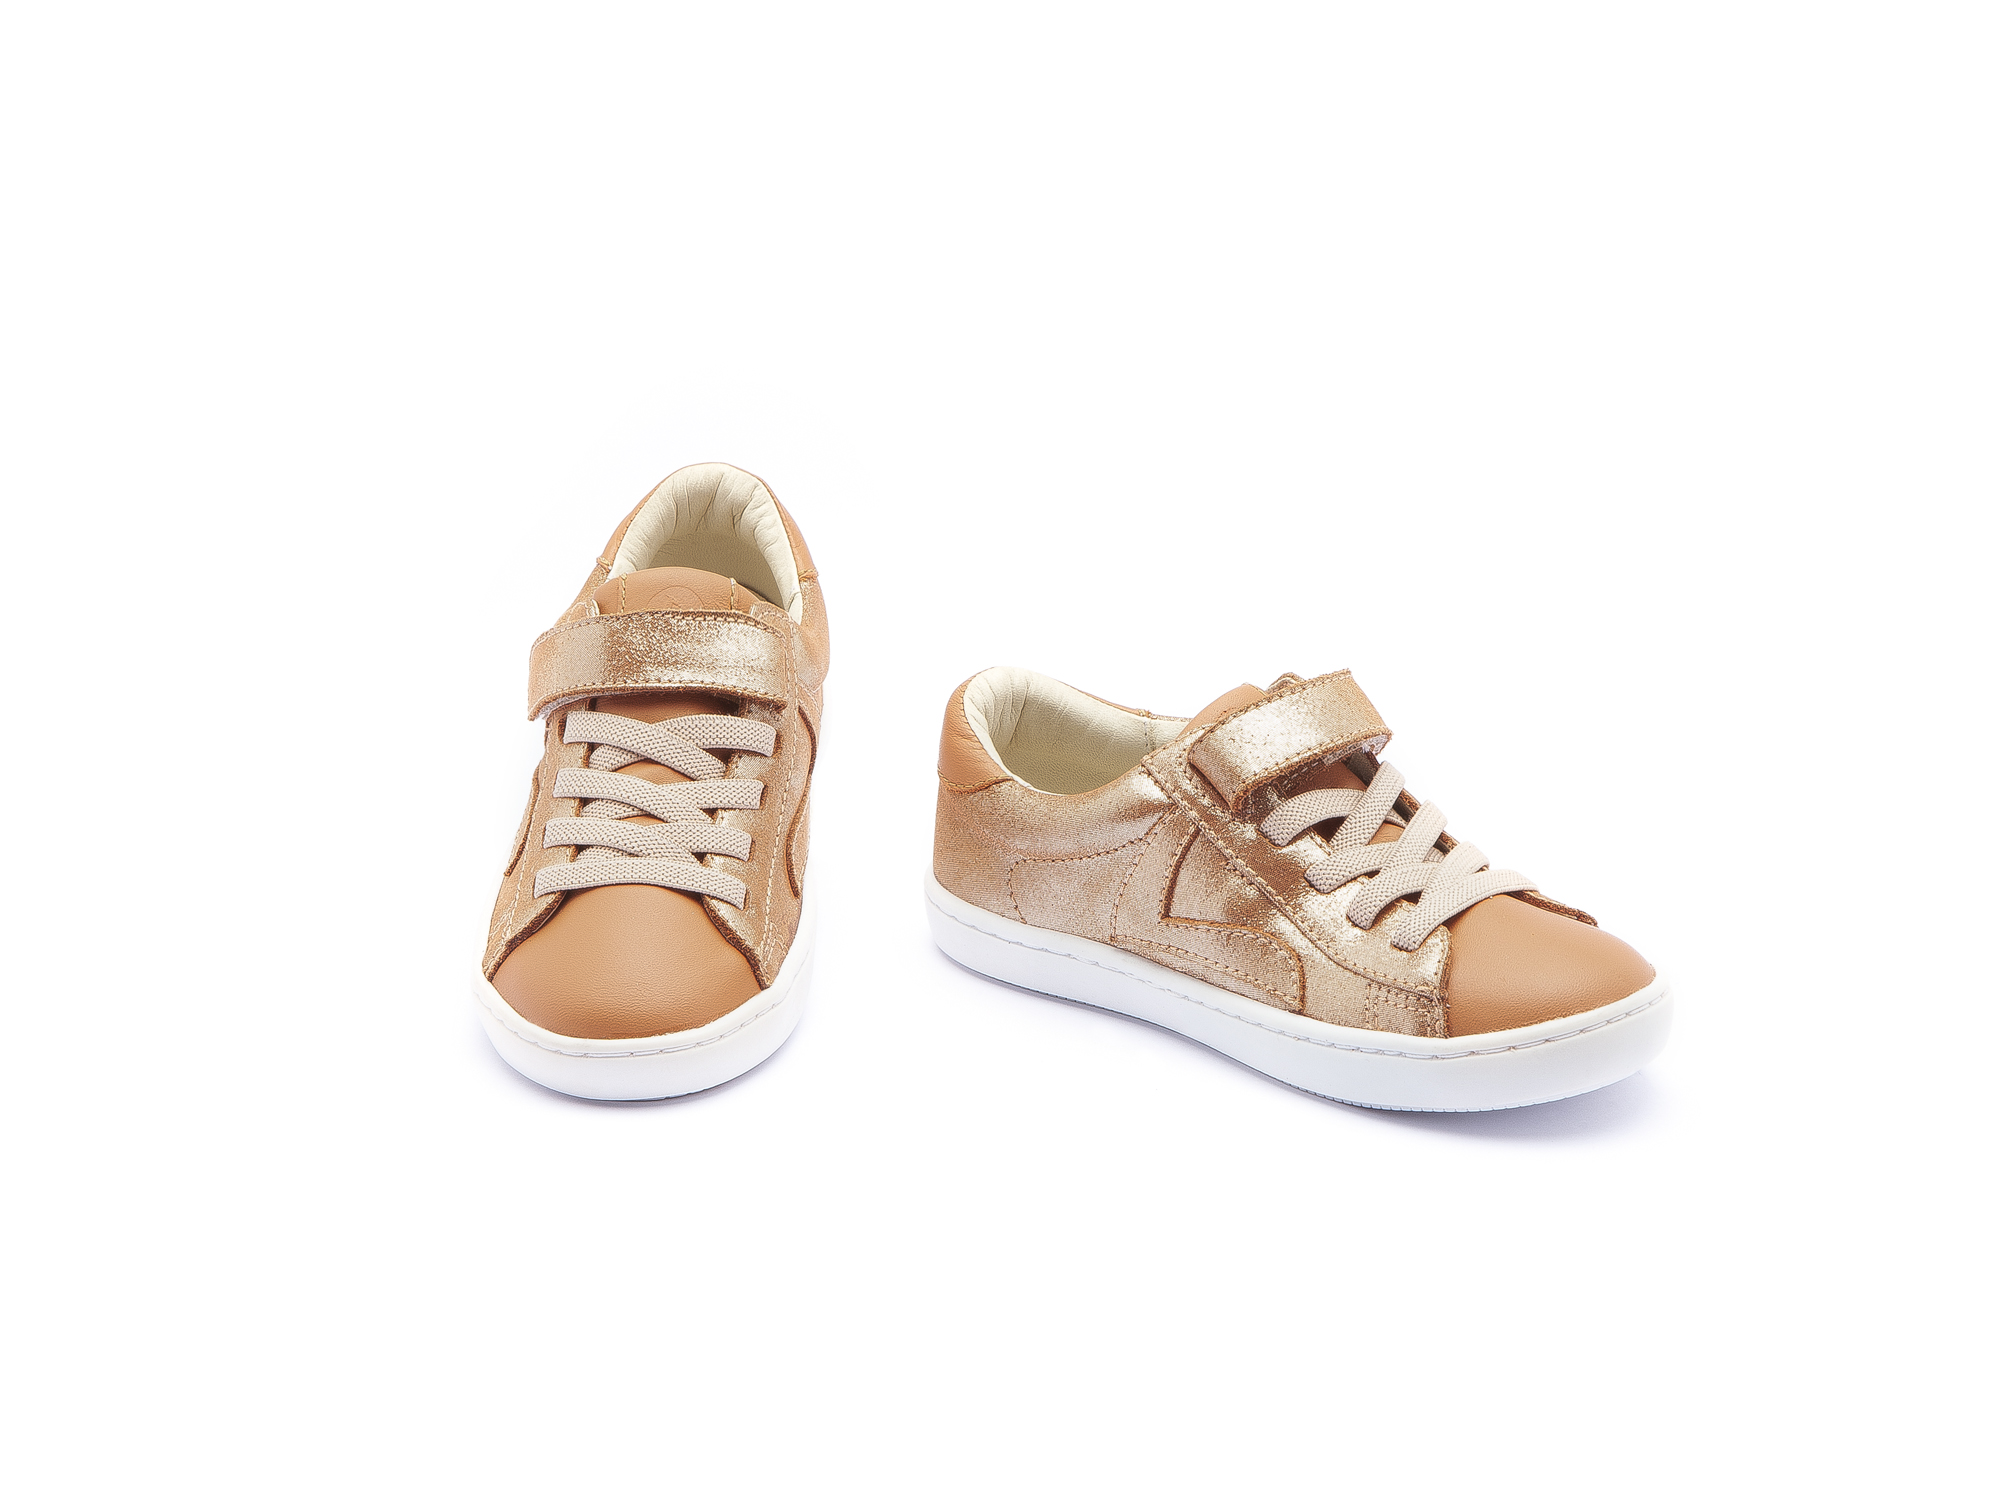 Sneaker Casual Little Skid Mica Gold/ Amendoim Toddler 2 à 4 anos - 1